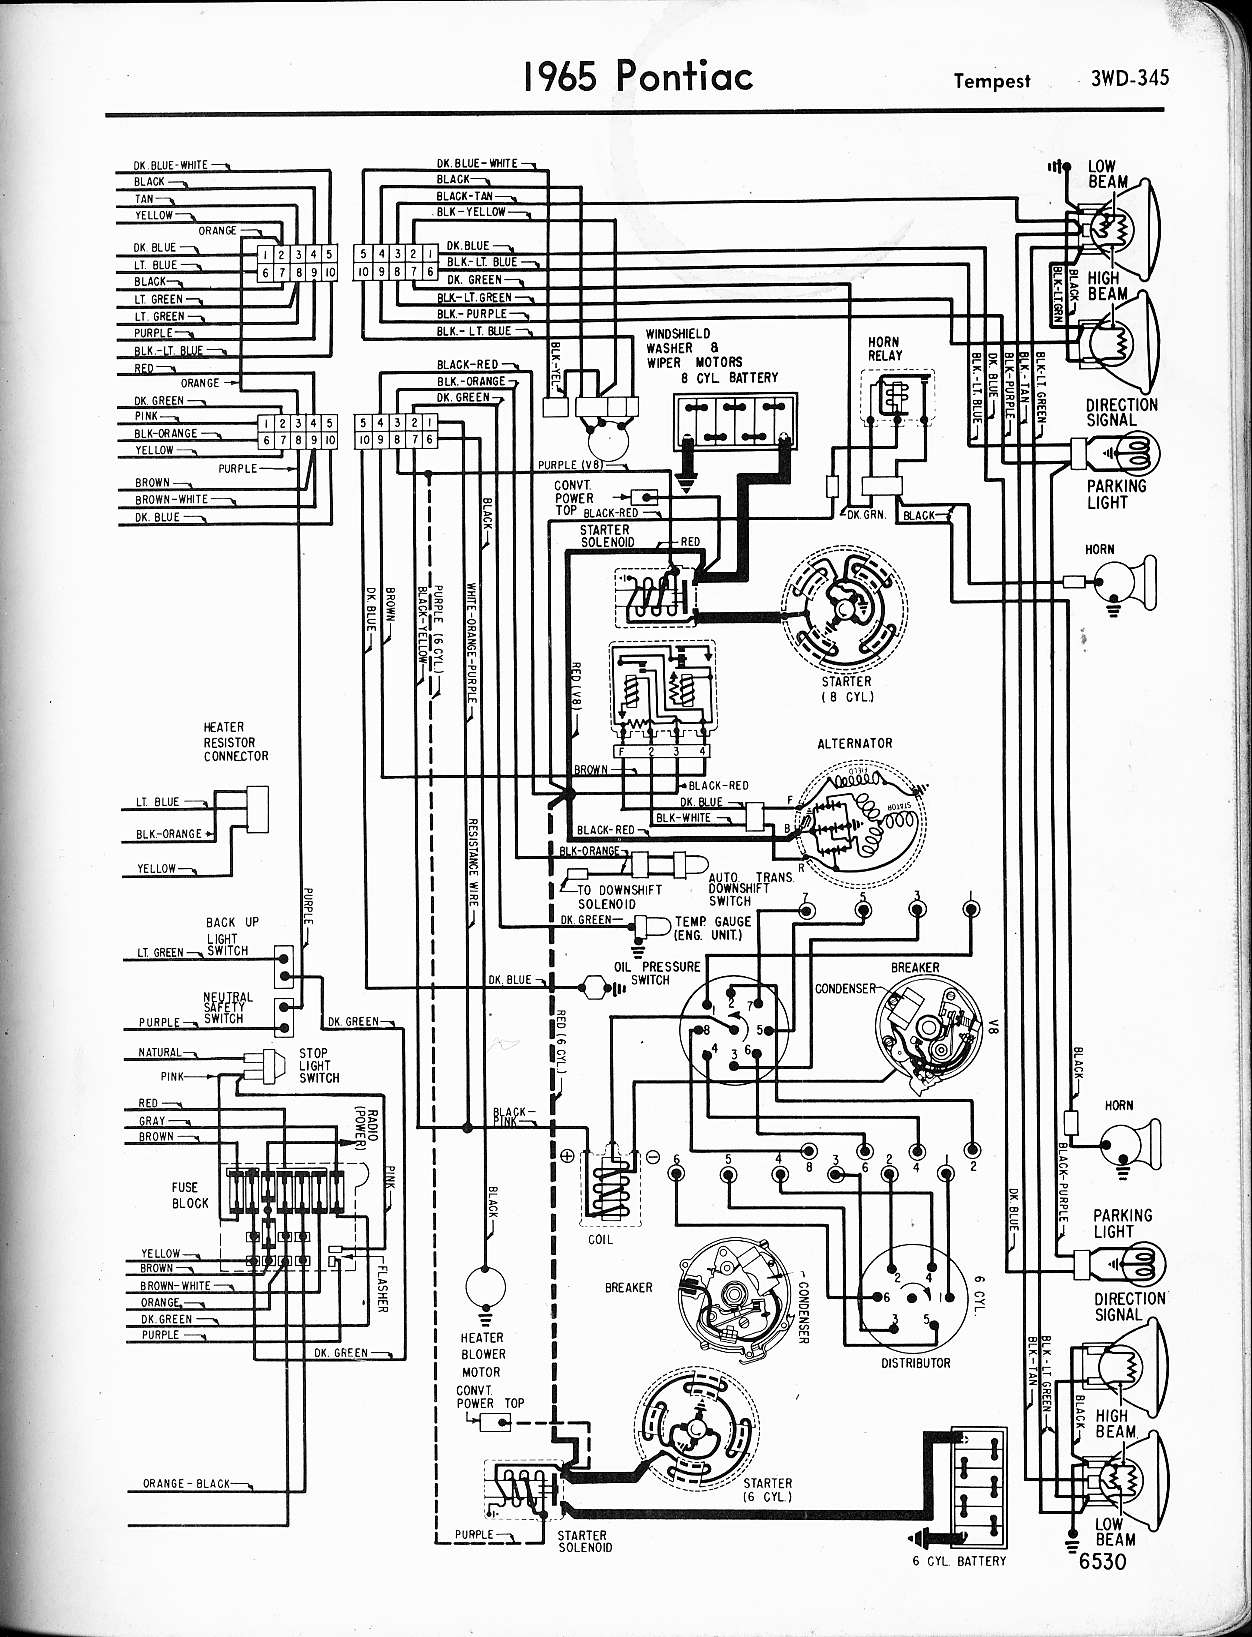 Wiring Diagram For 1969 Roadrunner Schematics Diagrams Steering Column Schematic Gto Electrical Rh Culturetearoom Com Mopar Alternator